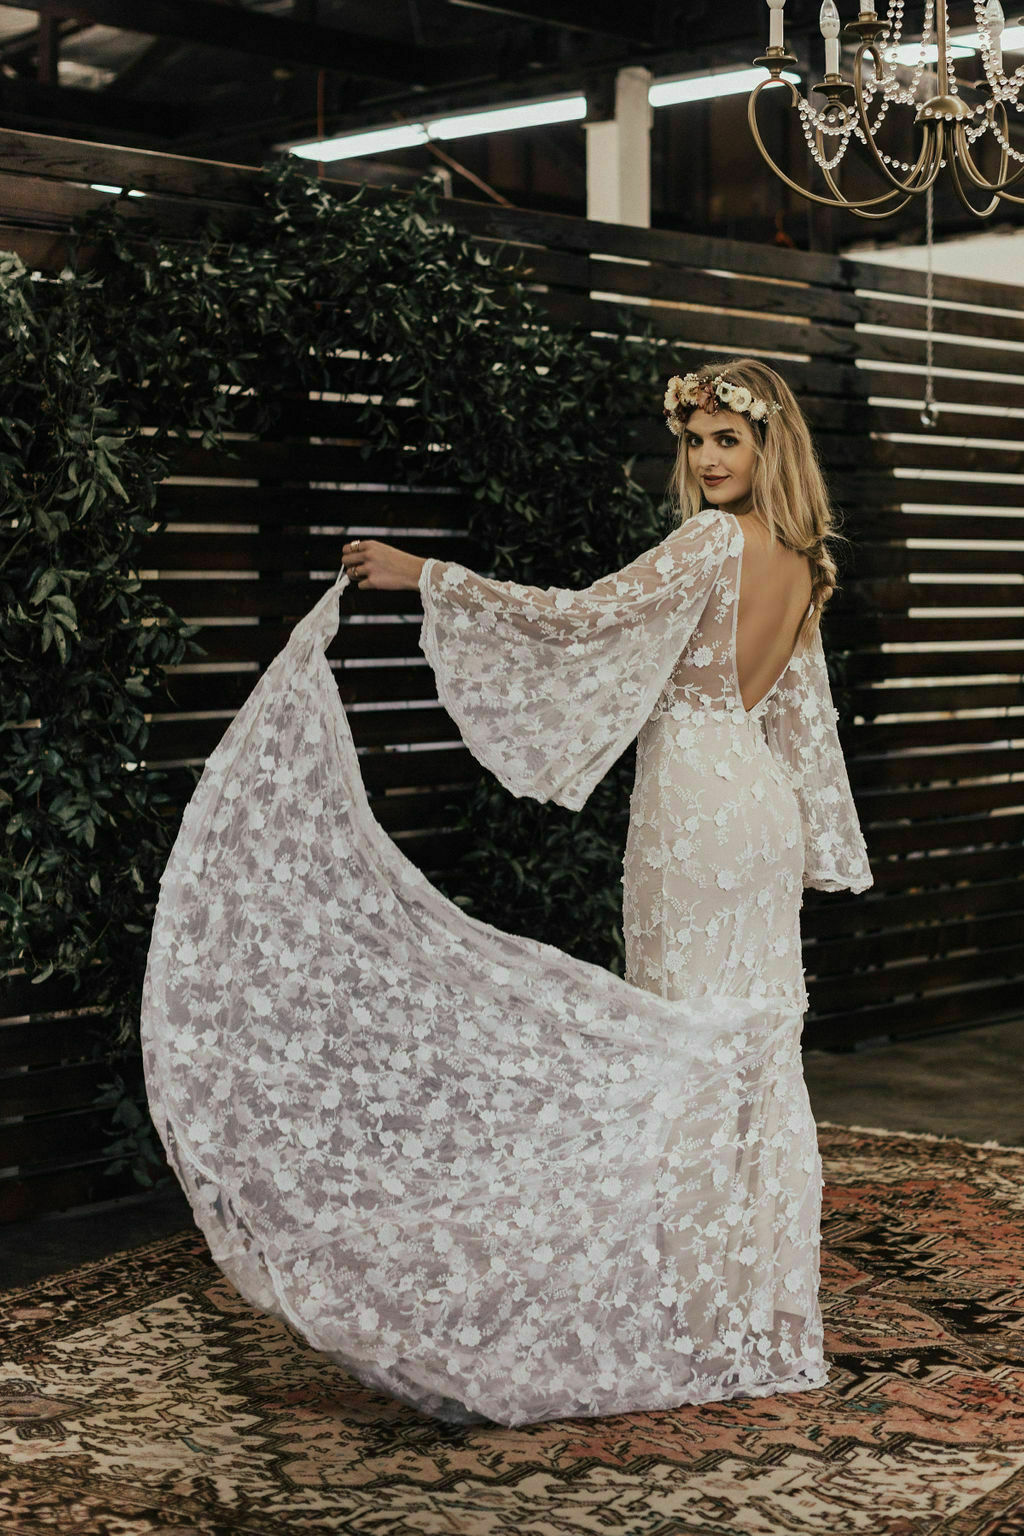 Samantha-angel-sleeves-boho-chic-abgel-sleeves-wedding-dress